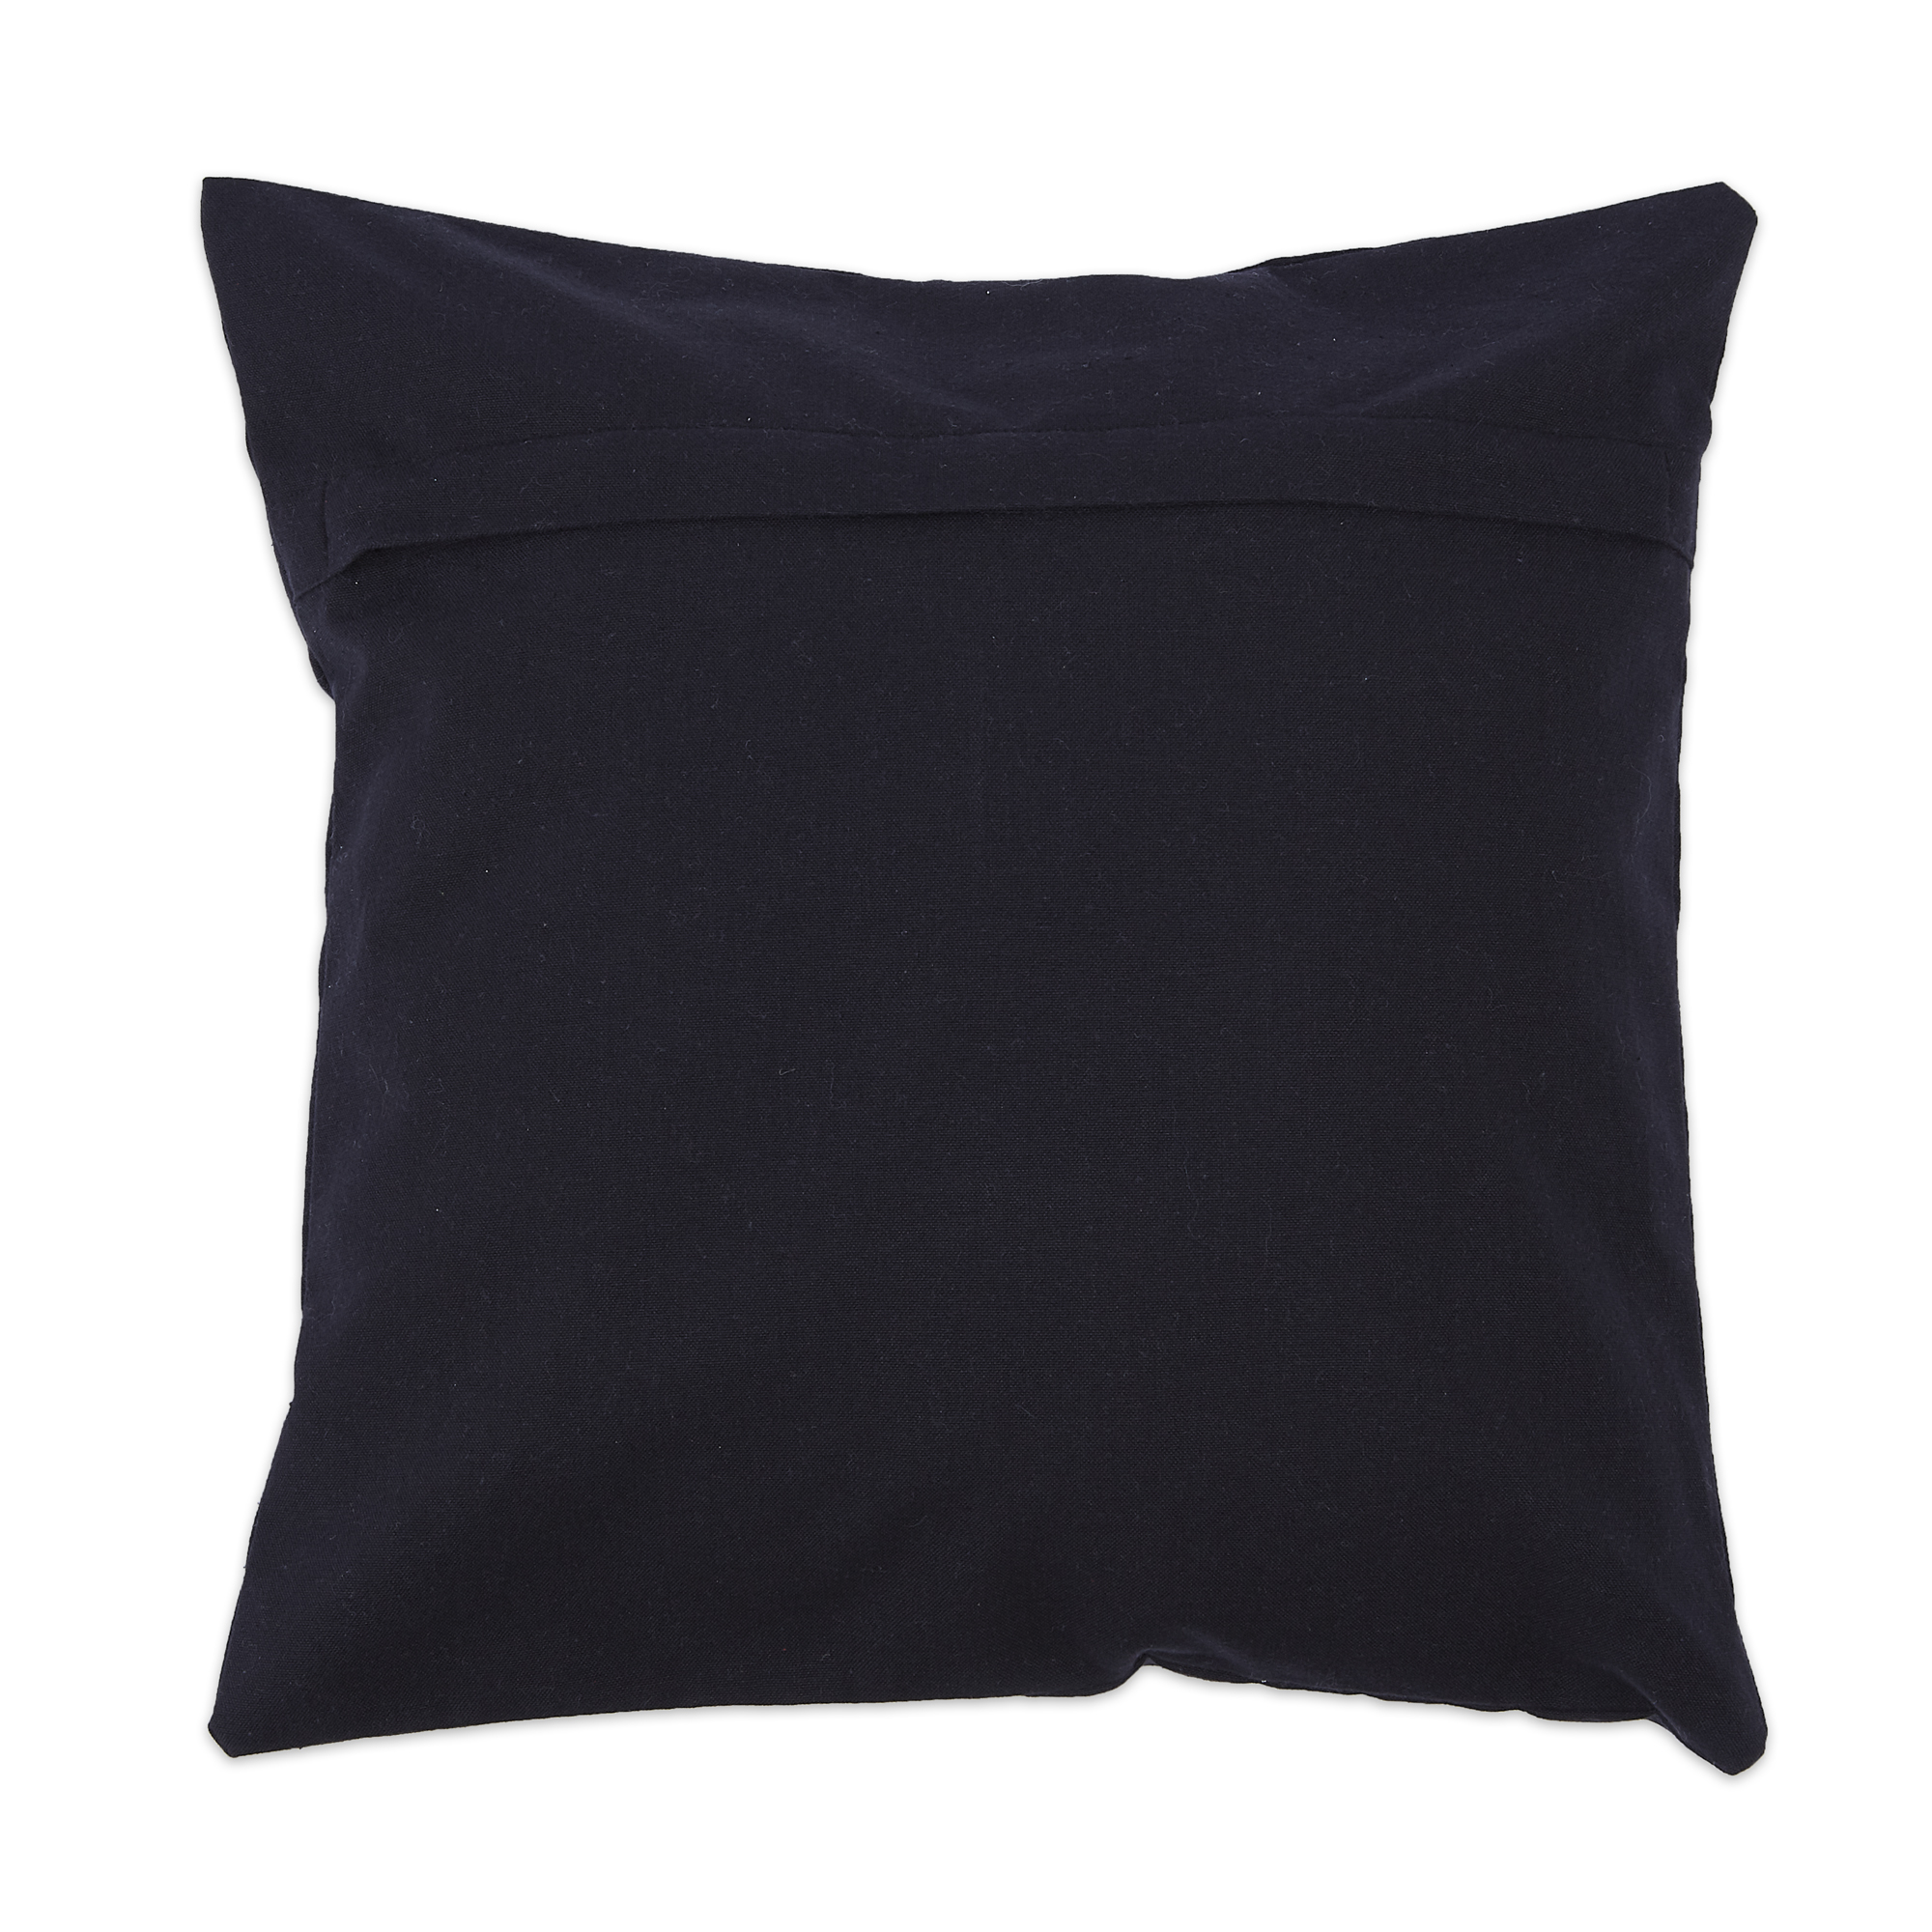 Assorted Red/Black Pillow Cover 18x18 Set/4